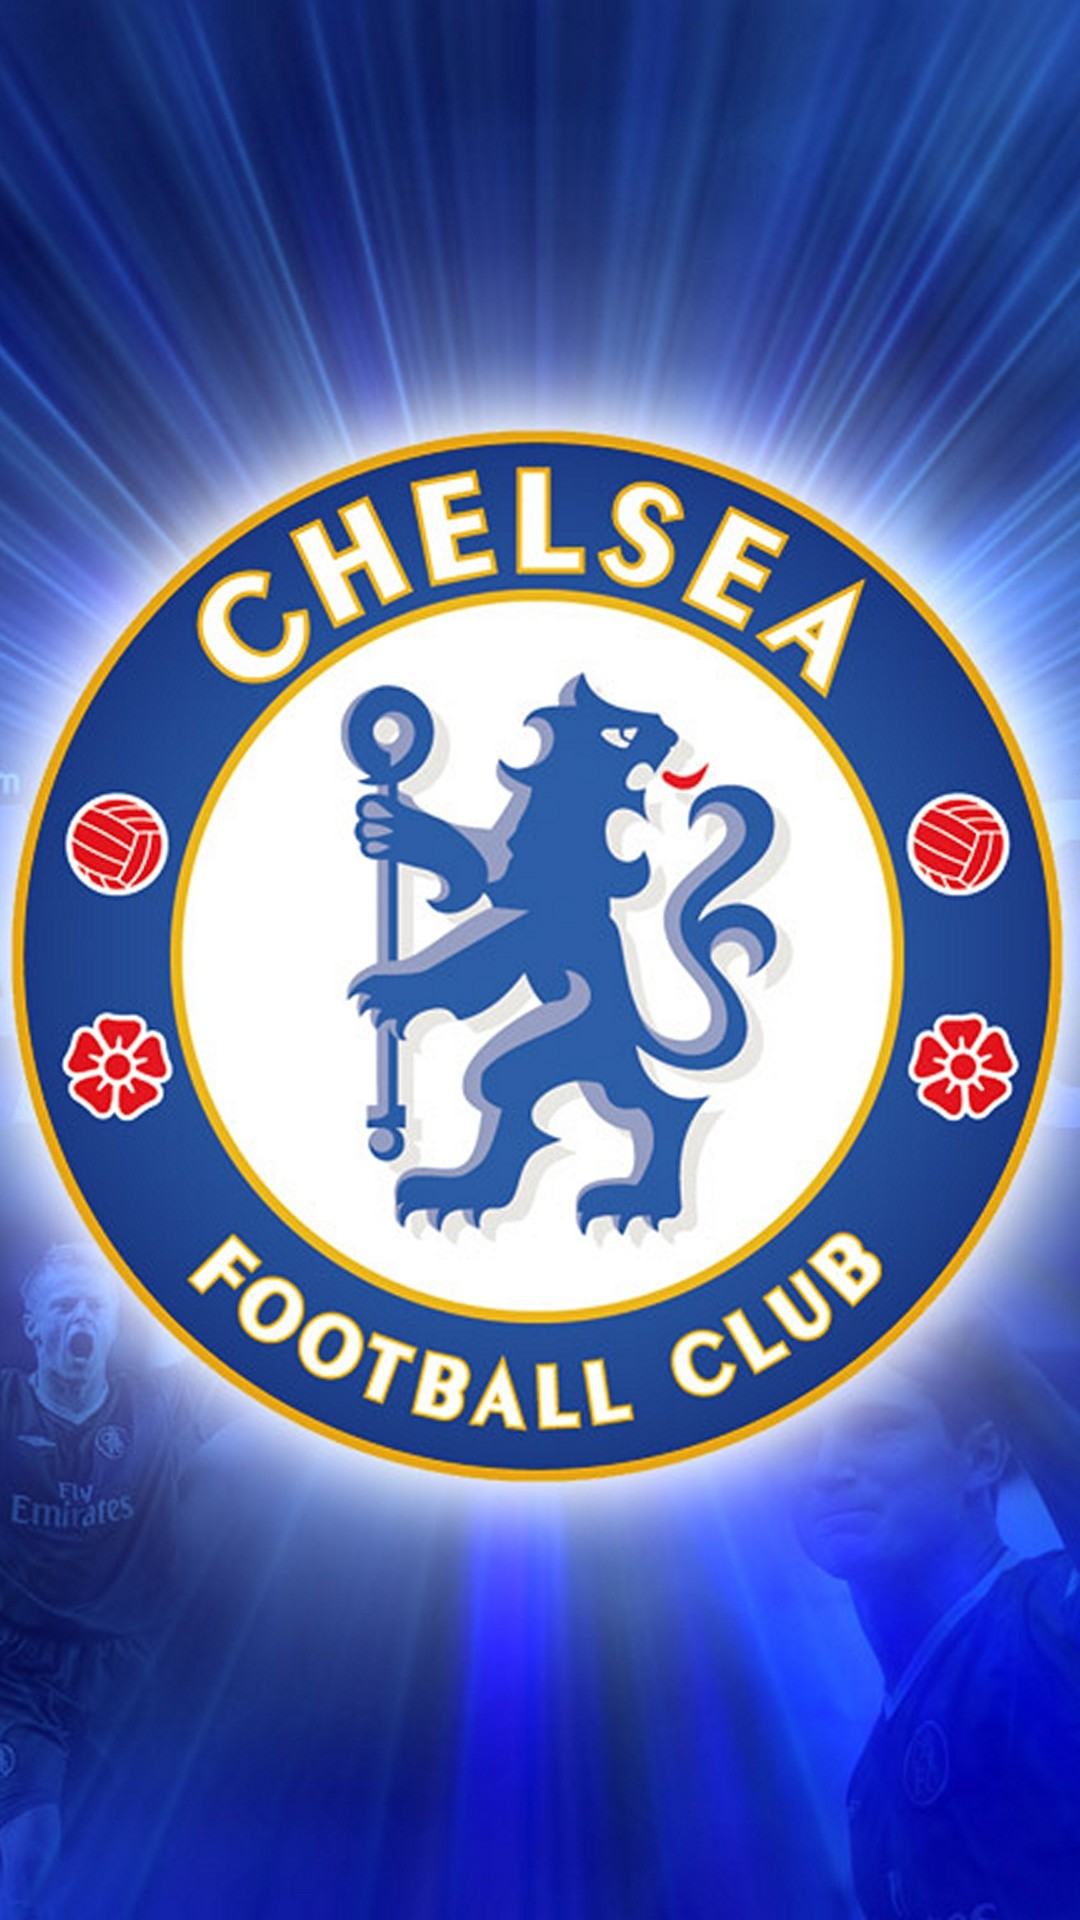 1080x1920 Wallpaper iphone football - Chelsea Fc Logo Football Iphone 6 Plus Hd  Wallpaper